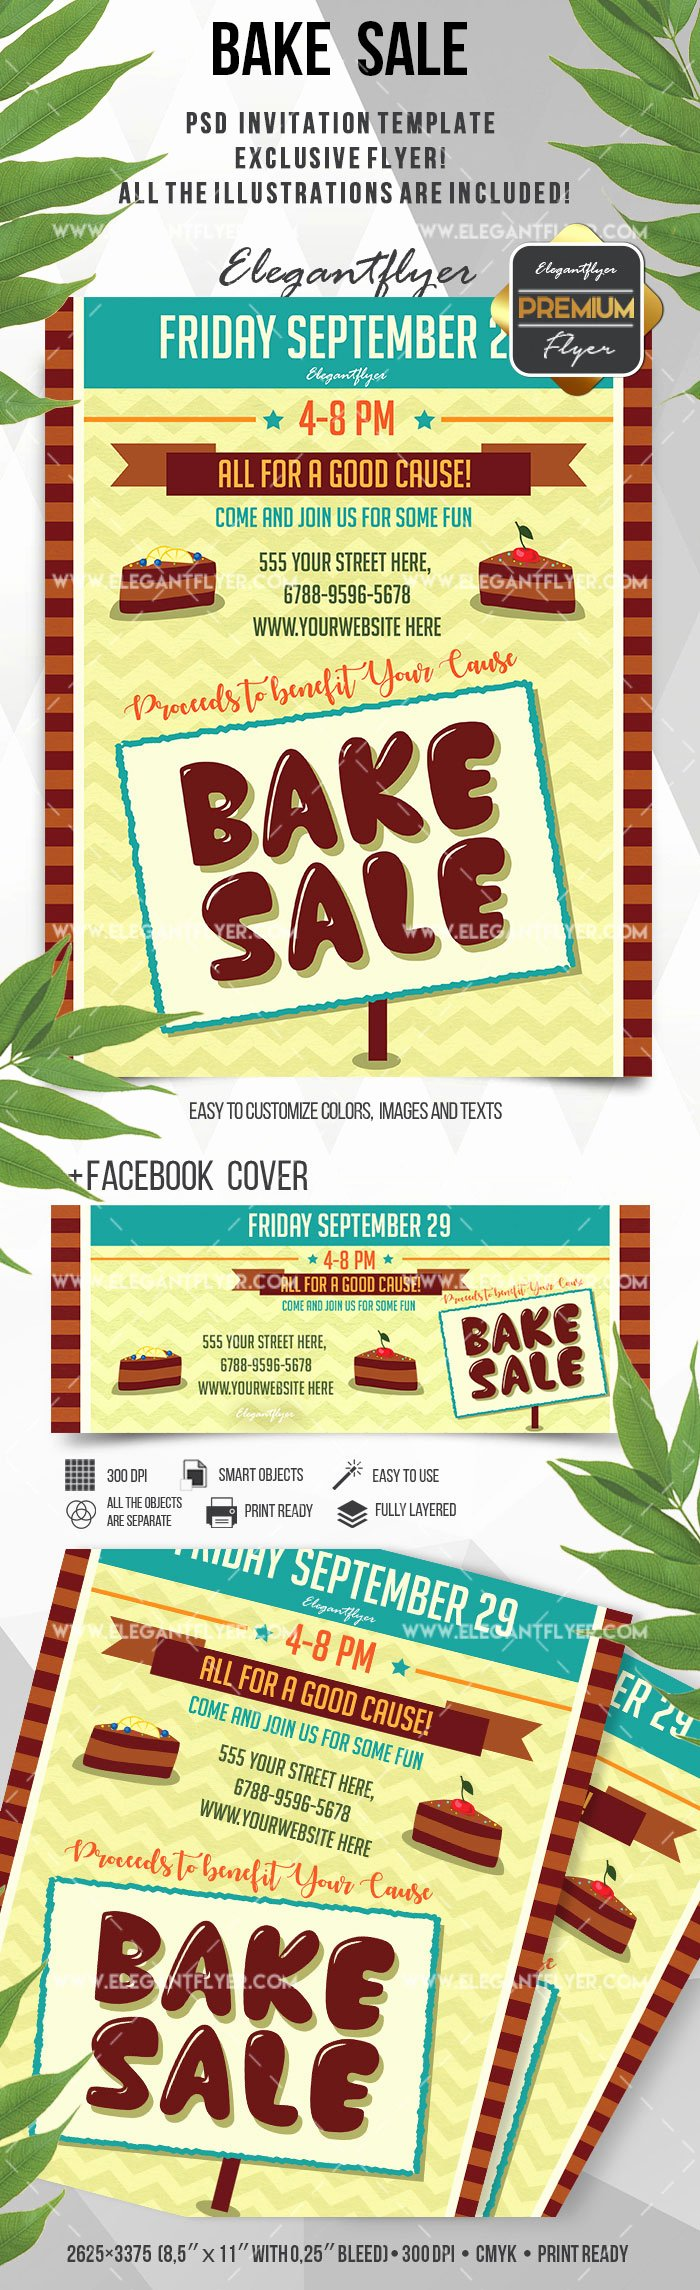 Bake Sale Flyer Template Inspirational Flyer for Bake Sale Bakery – by Elegantflyer